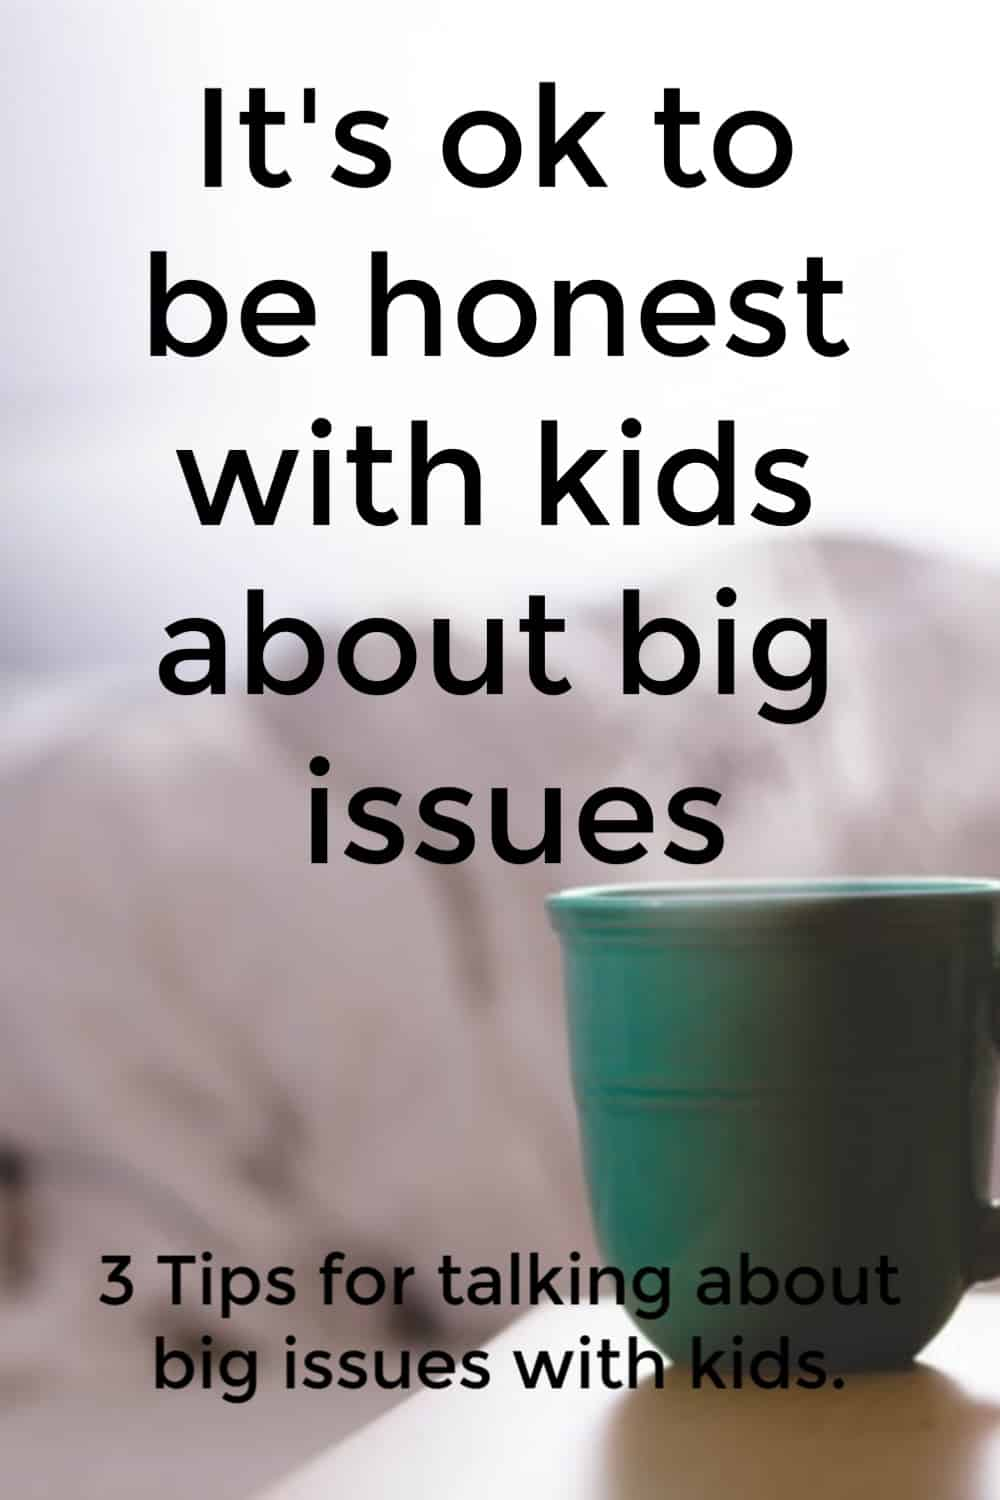 3 Tips for talking about big issues with kids. Support for moms doesn't have to be hard to find with this comprehensive guide filled with parenting resources for moms you won't want to miss.